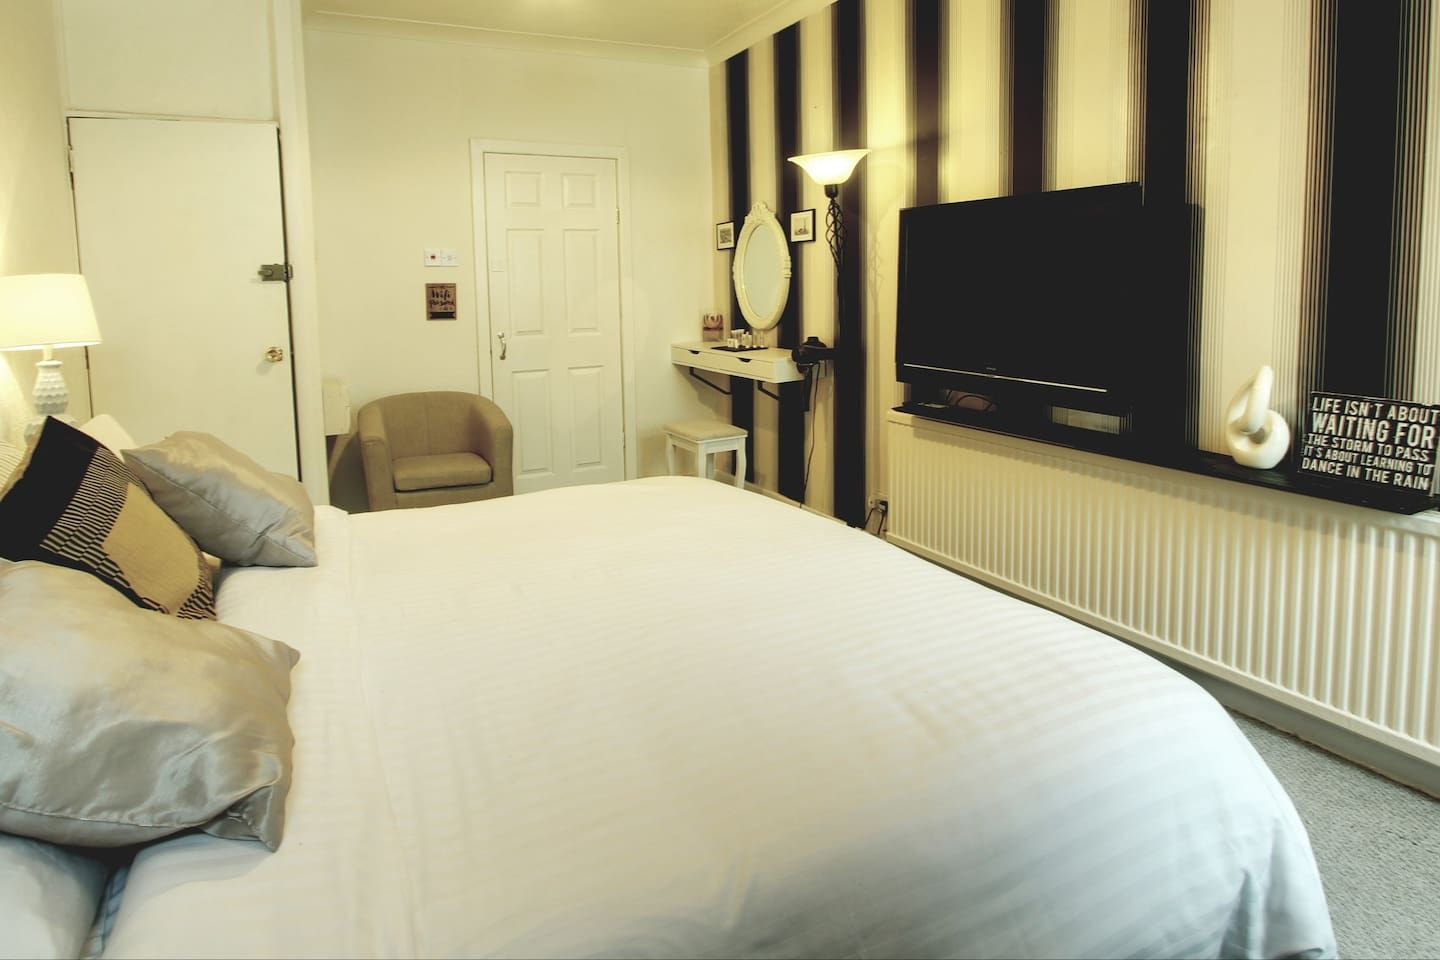 Central Apartment Town Centre Nr Winter Gardens Apartments For Rent In Blackpool Apartments For Rent Home Comforts Apartment